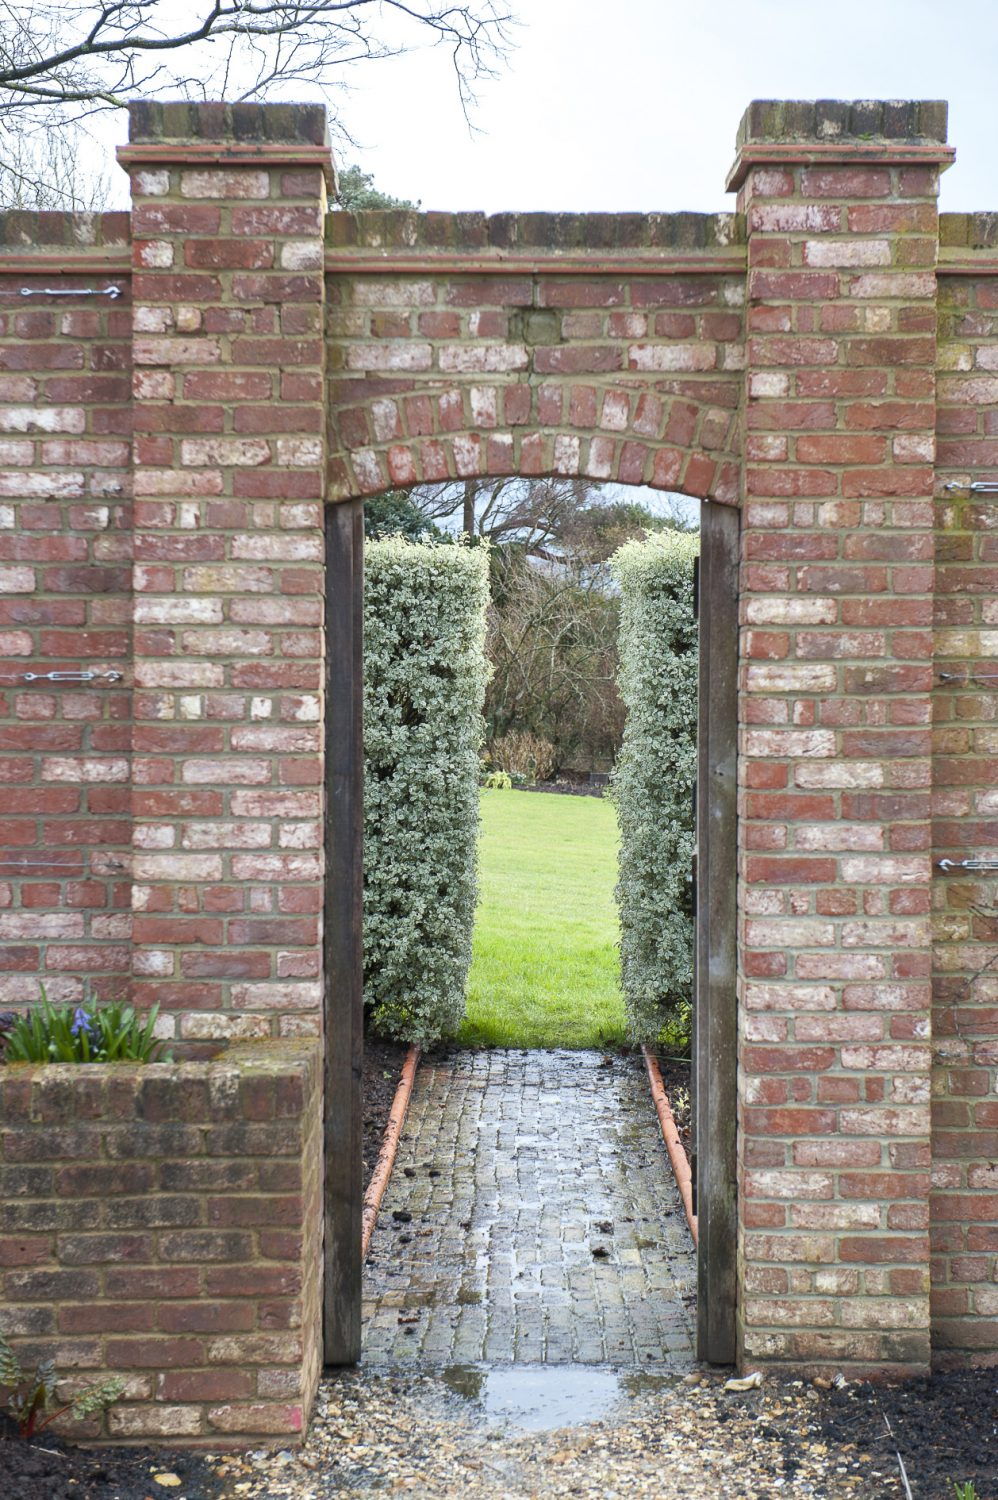 The family has built a wonderful, traditional walled garden, including brick paths, flower and vegetable beds, and a large, modern greenhouse